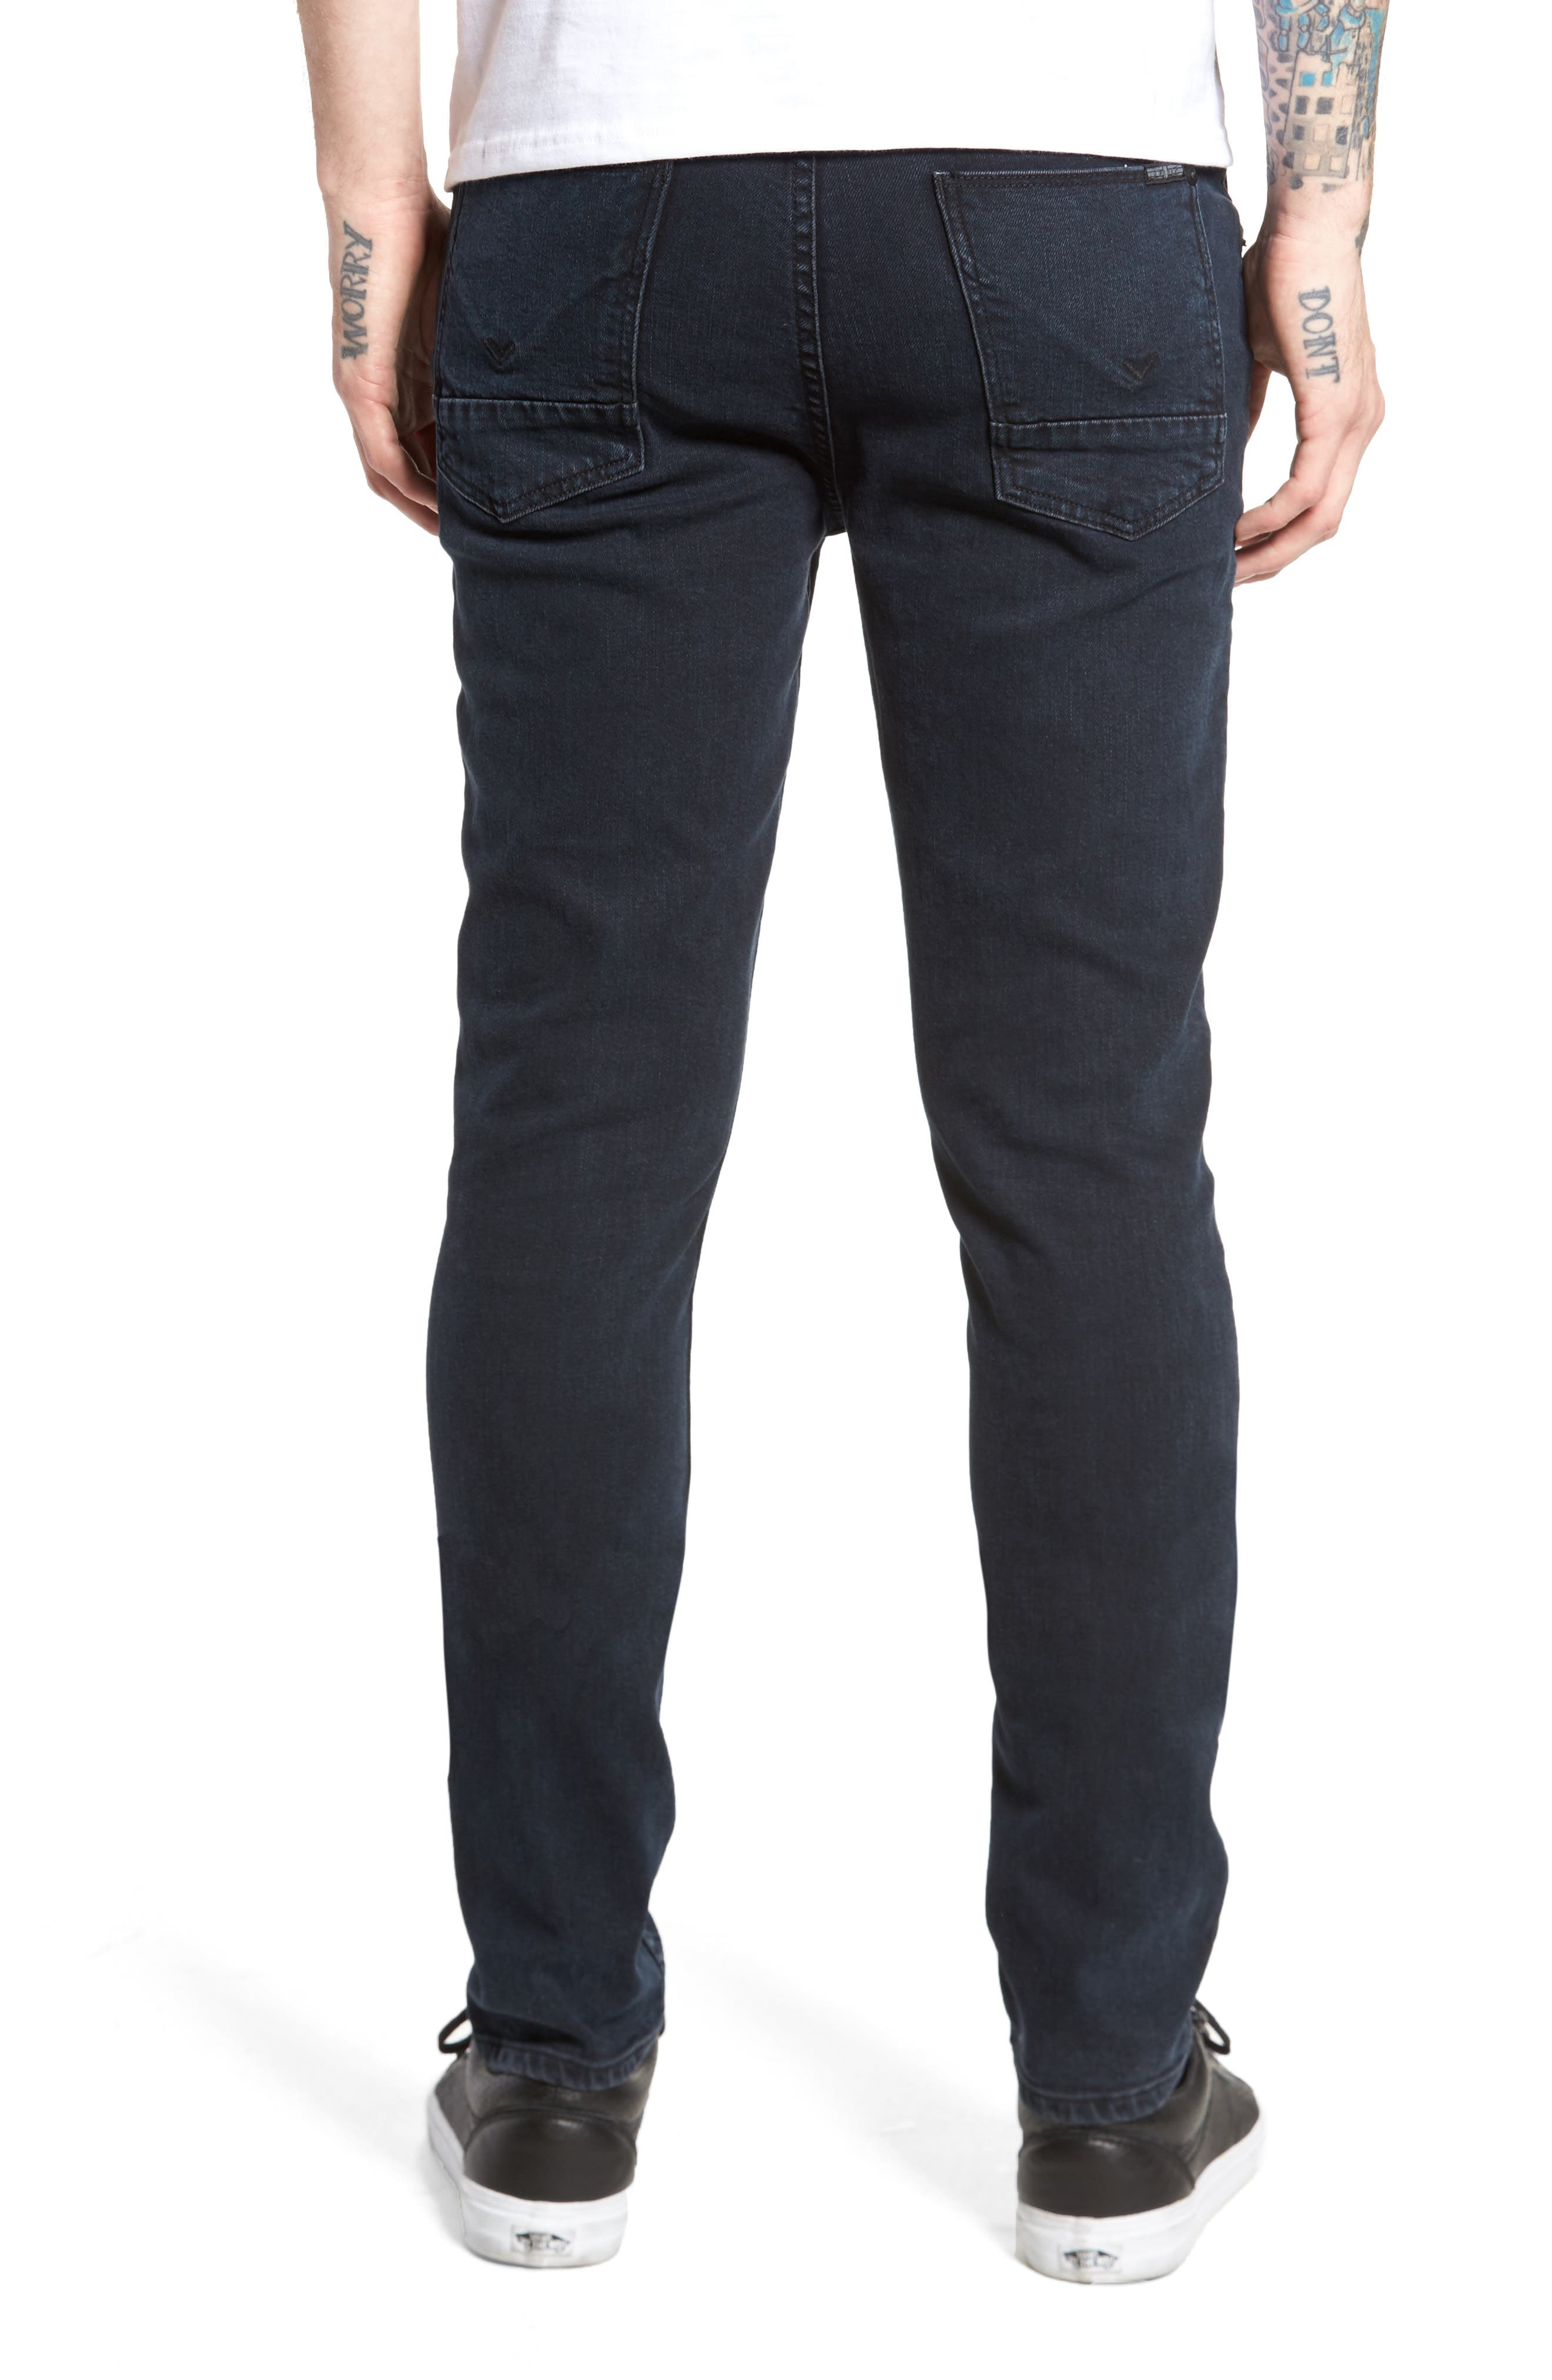 Axl Skinny Fit Jeans,                             Alternate thumbnail 2, color,                             401